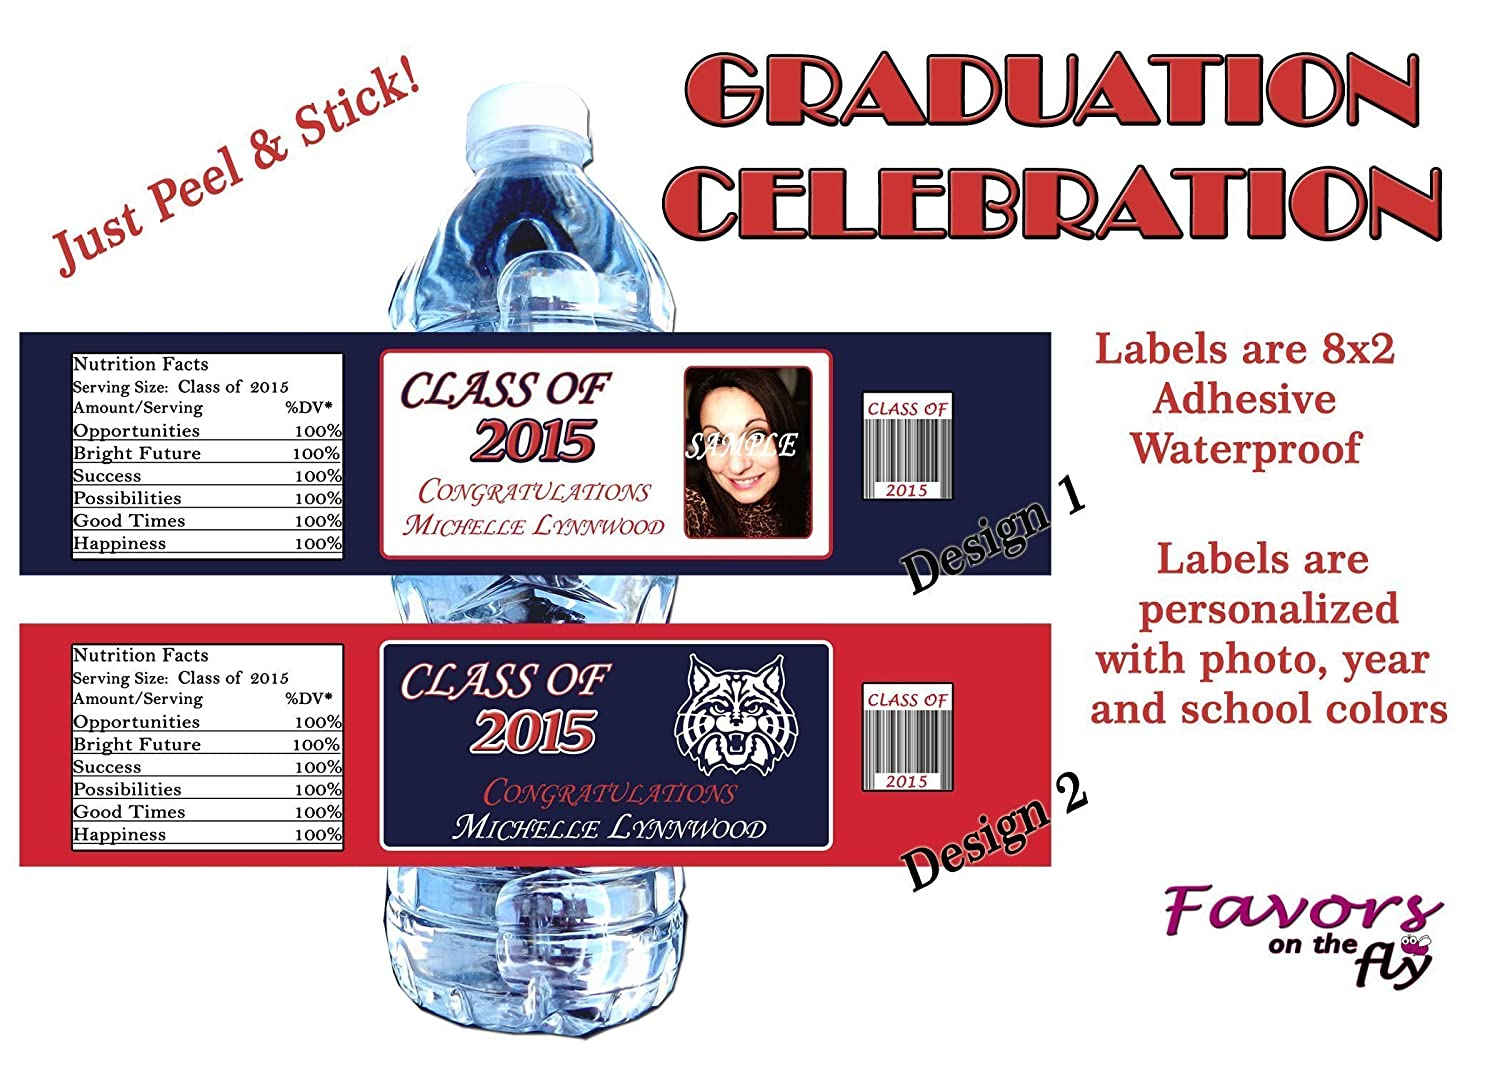 20 Graduation Waterproof Adhesive Water Bottle Labels personalized with photo and school colors!